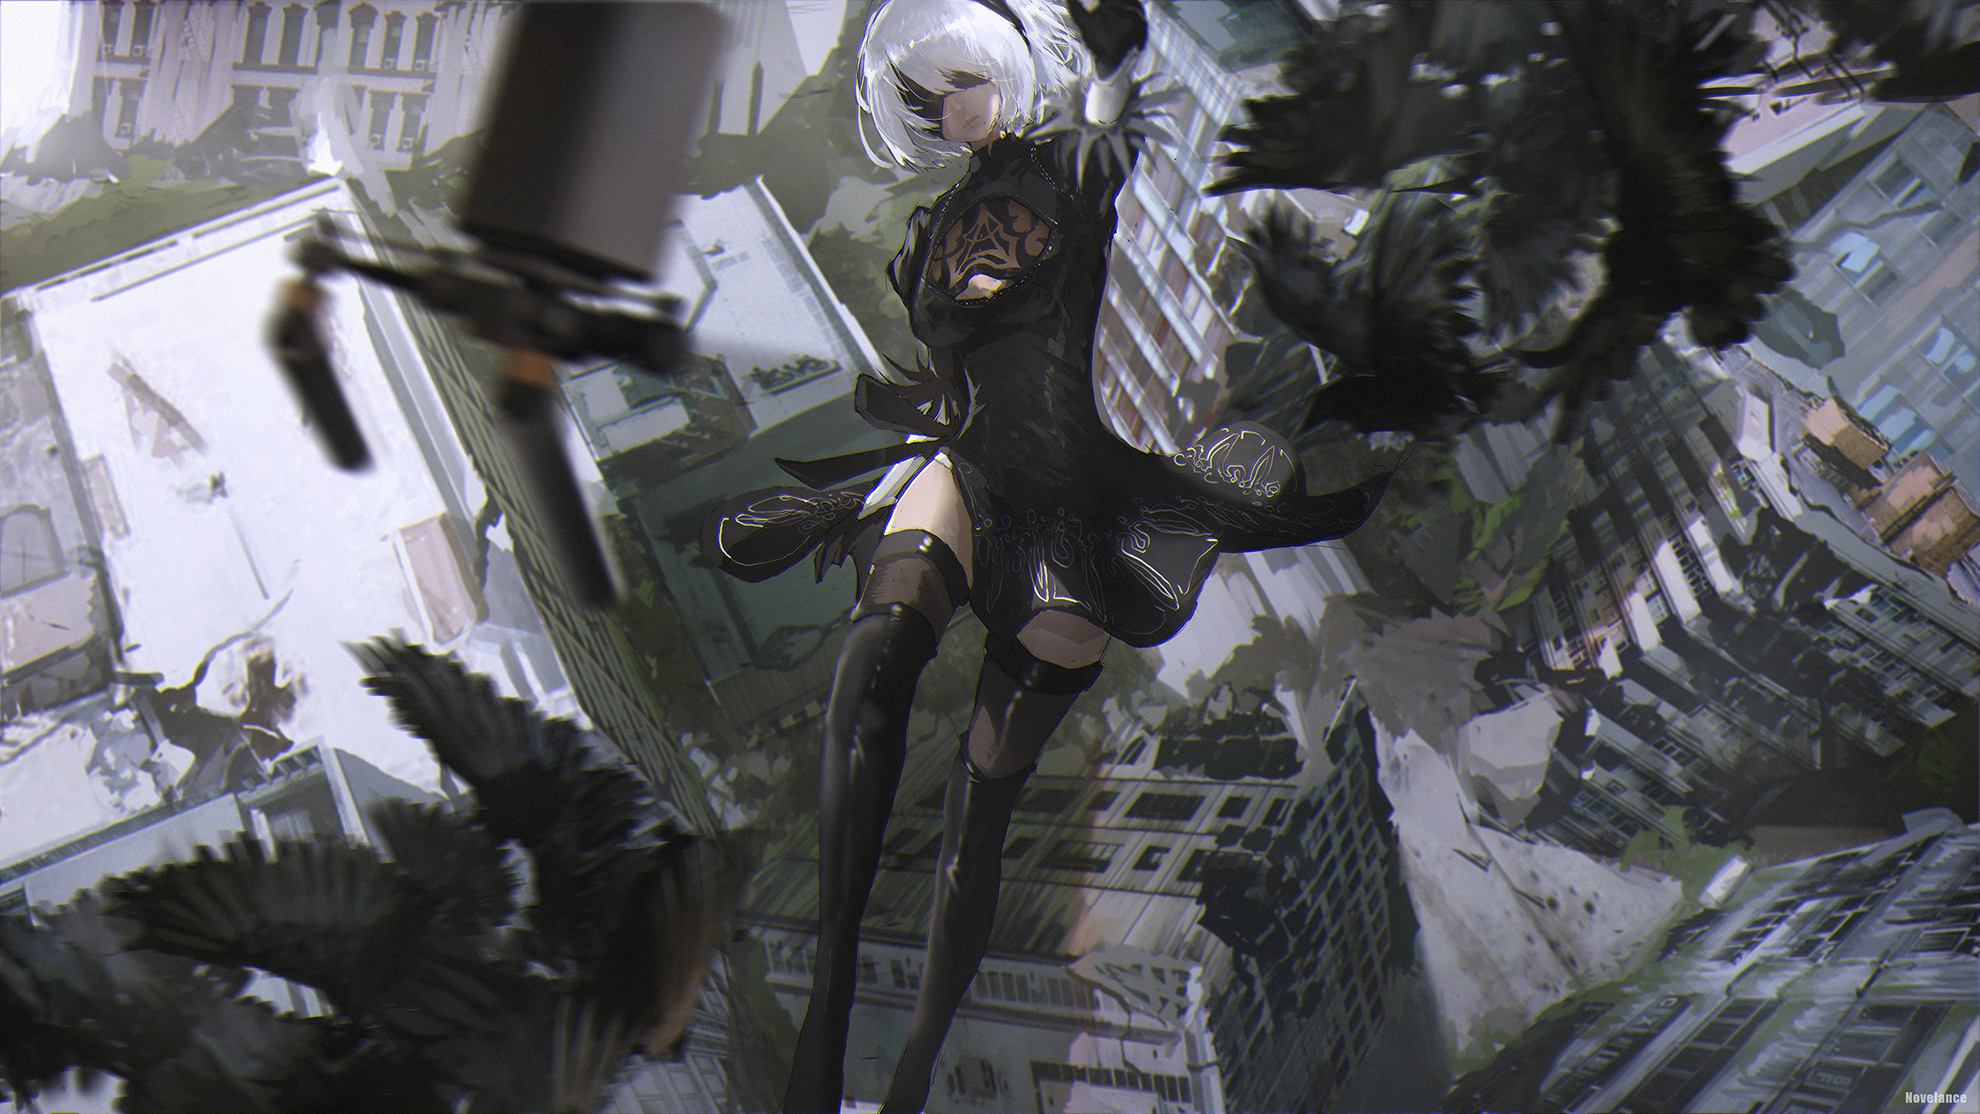 Nier Automata Wallpaper Hd Posted By Michelle Mercado